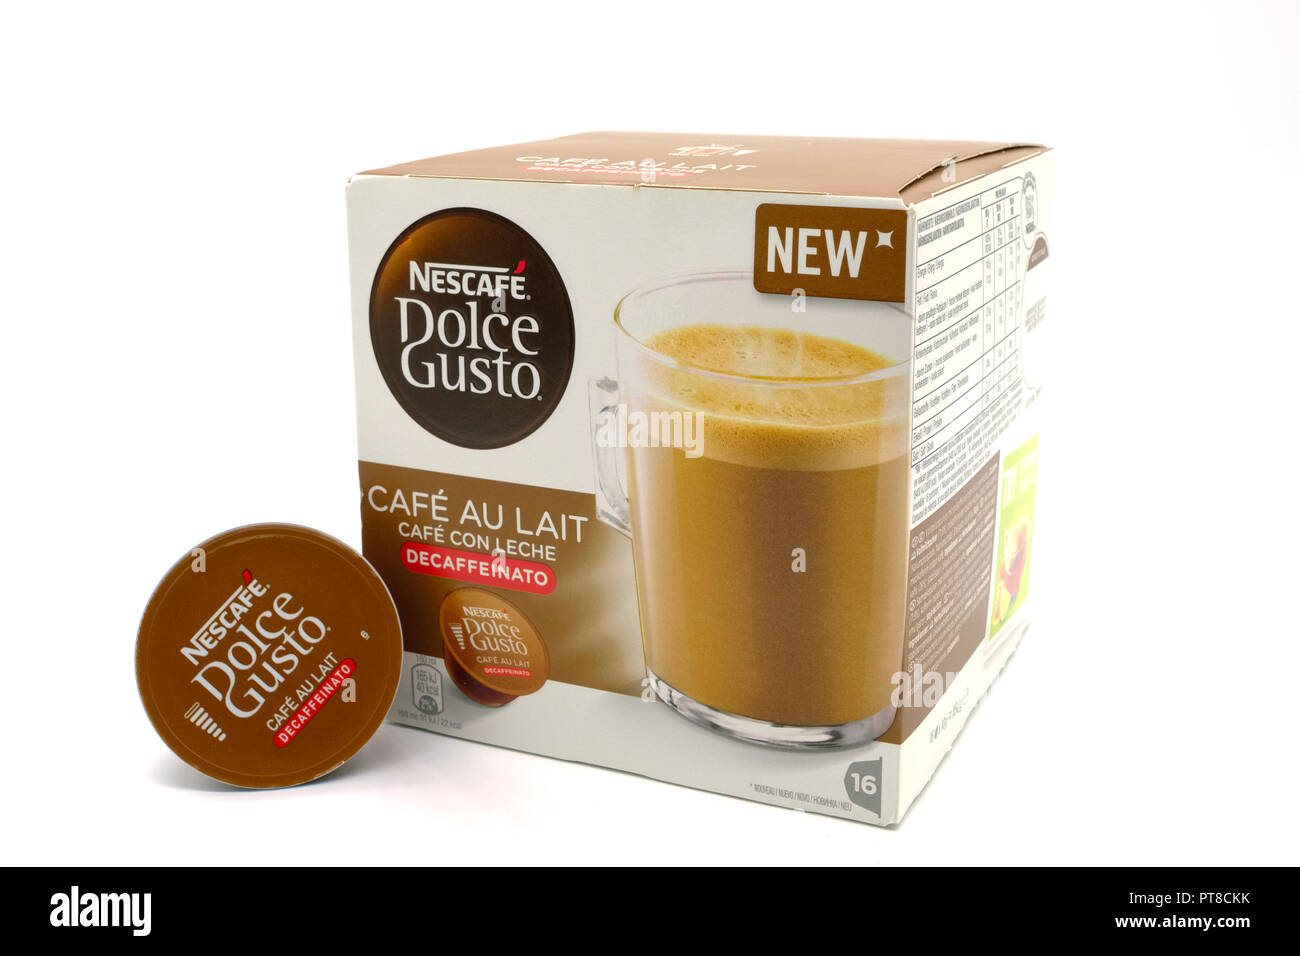 Largs, Scotland, UK - October 04, 2018: Nescafe Dolce Gusto Cafe au Lait Decaf Coffee in recyclable packaging. in line with UK current recycling initi - Stock Image